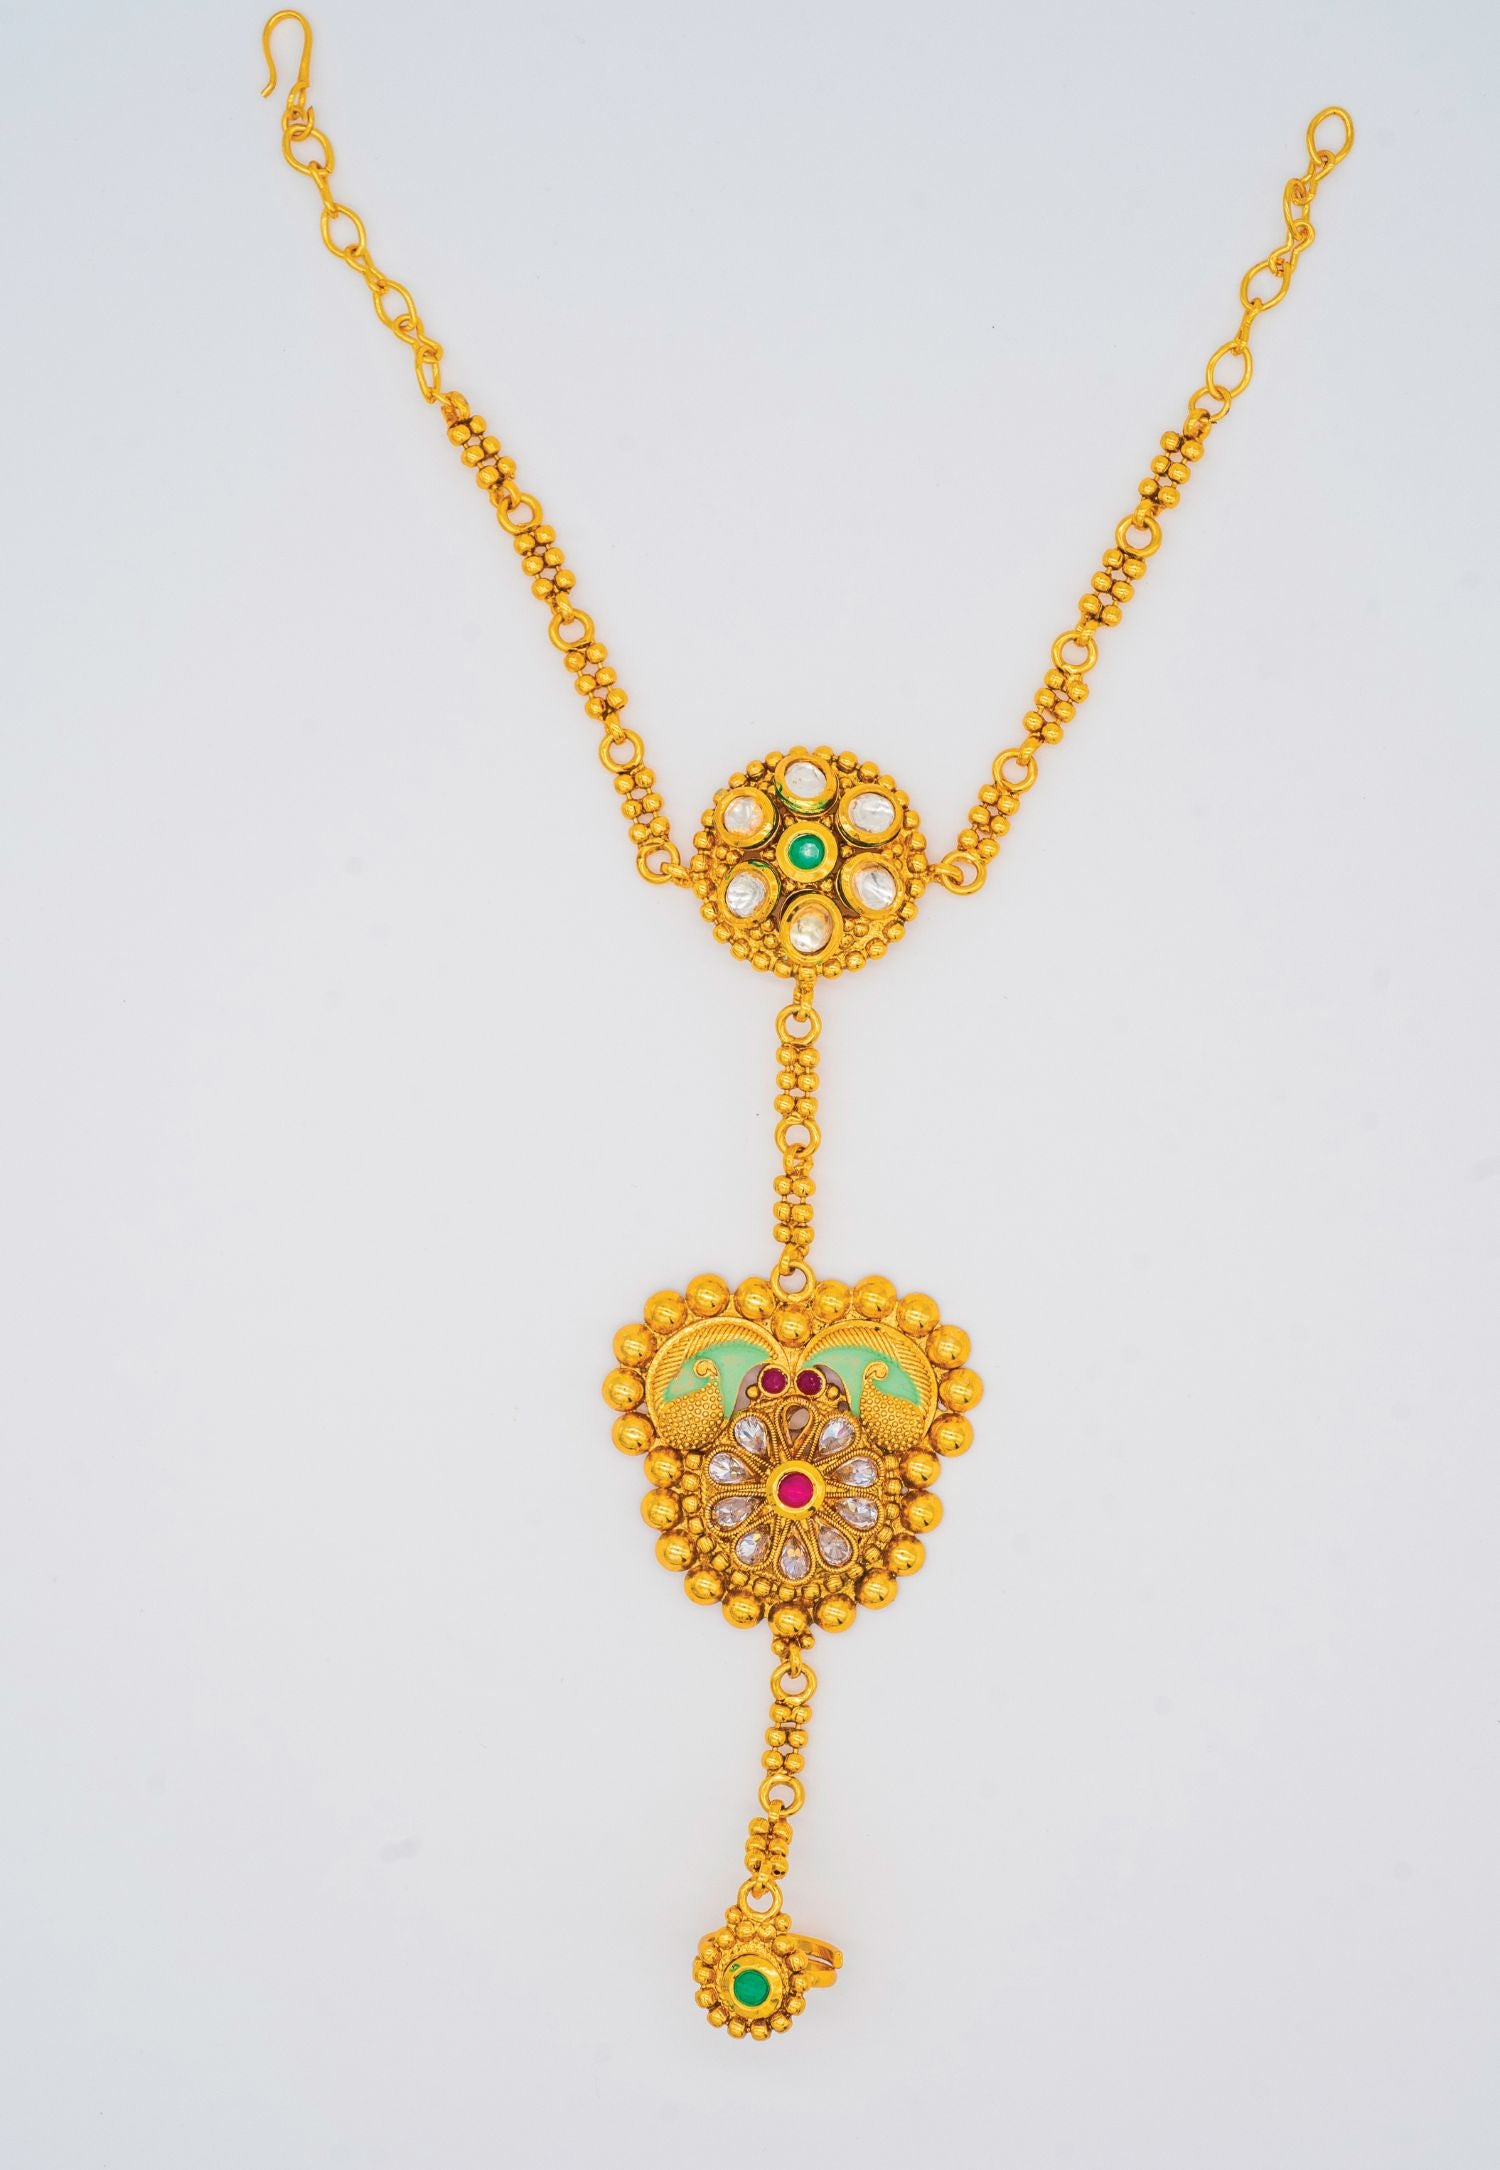 SABYASACHI INSPIRED EXQUISITE JEWELRY SET